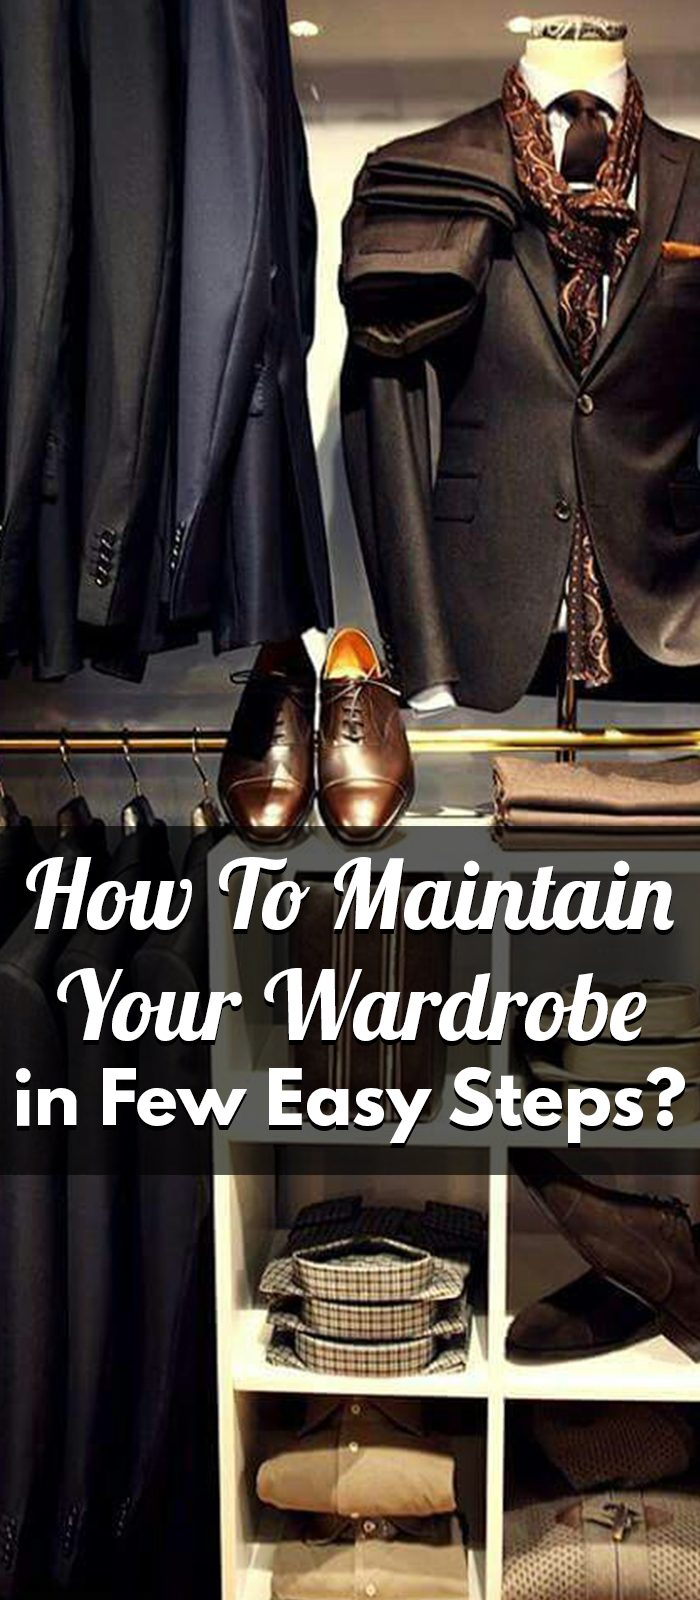 How To Maintain Your Wardrobe in Few Easy Steps